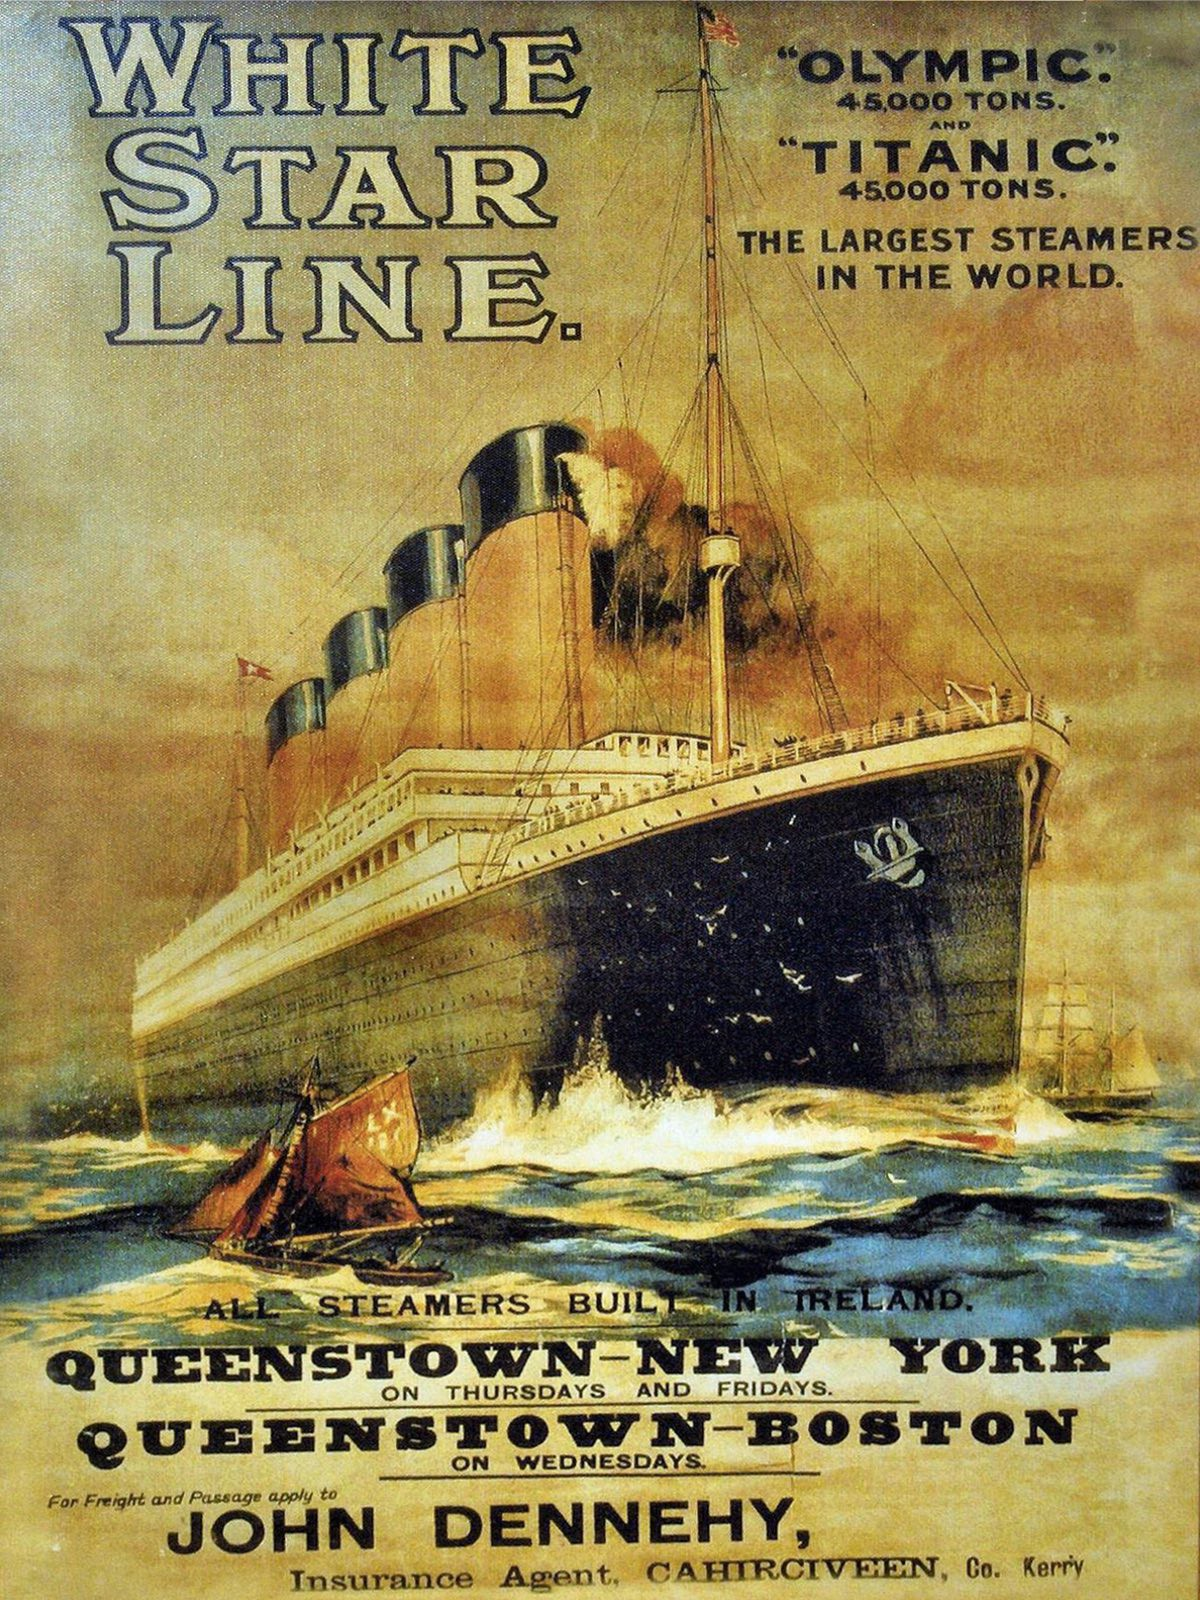 The White Star line would have ruined its reputation if their flagship was sunk